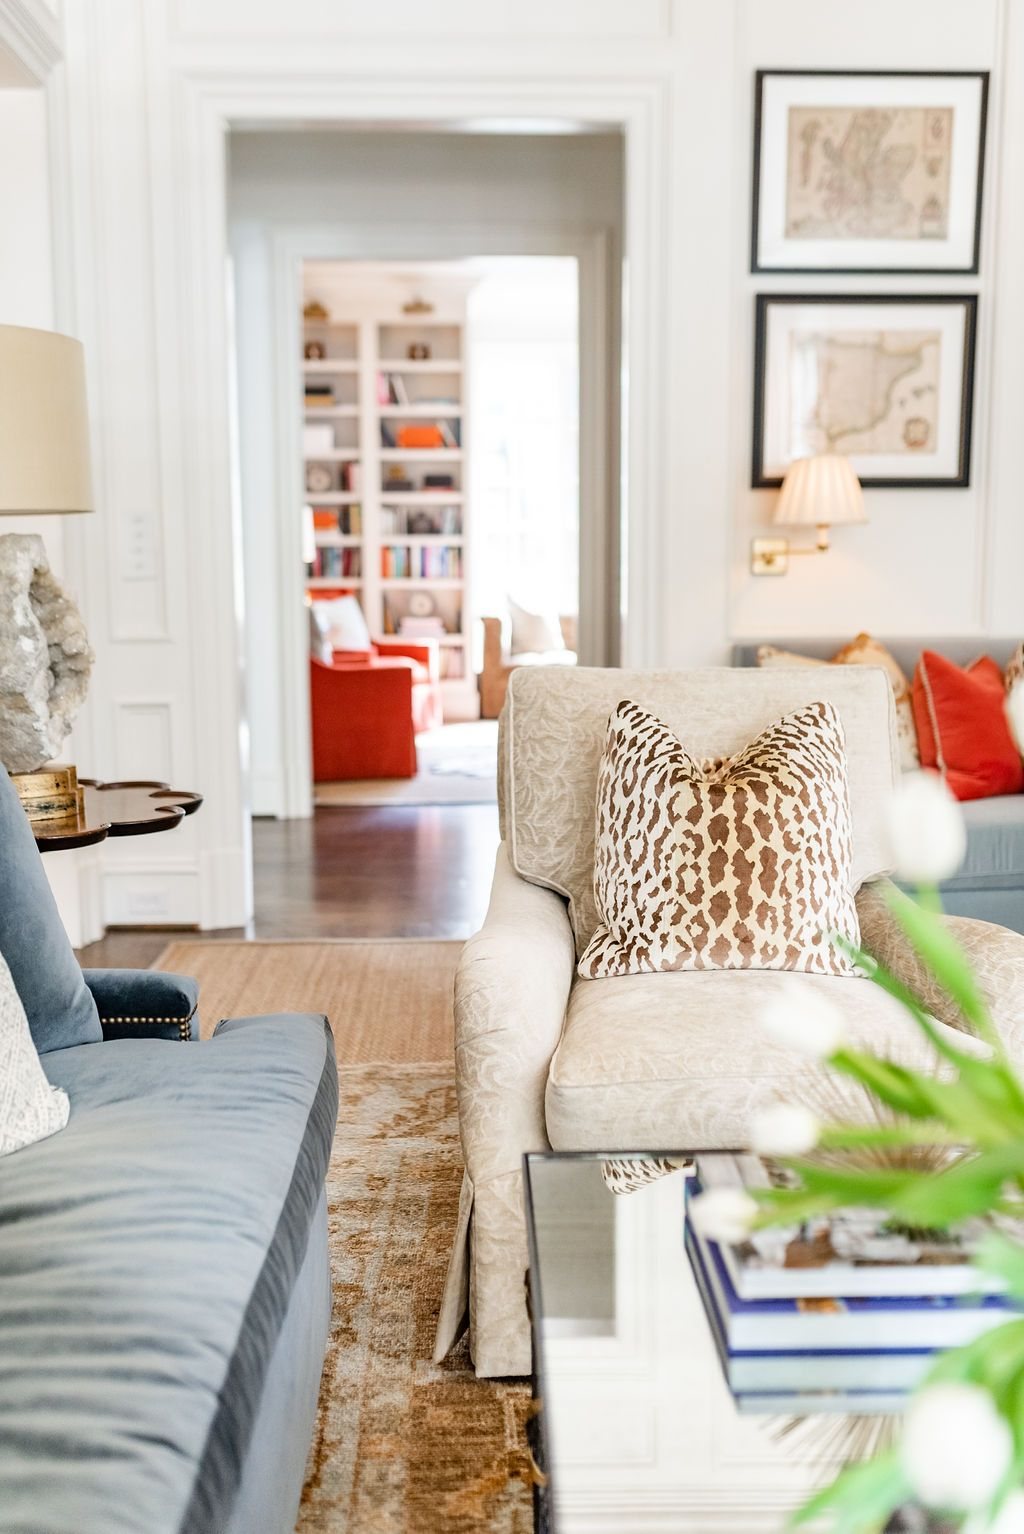 Transitional Living Room Style J Cathell In 2020 Transitional Living Rooms Living Room Style Living Room Decor #transitional #living #room #decor